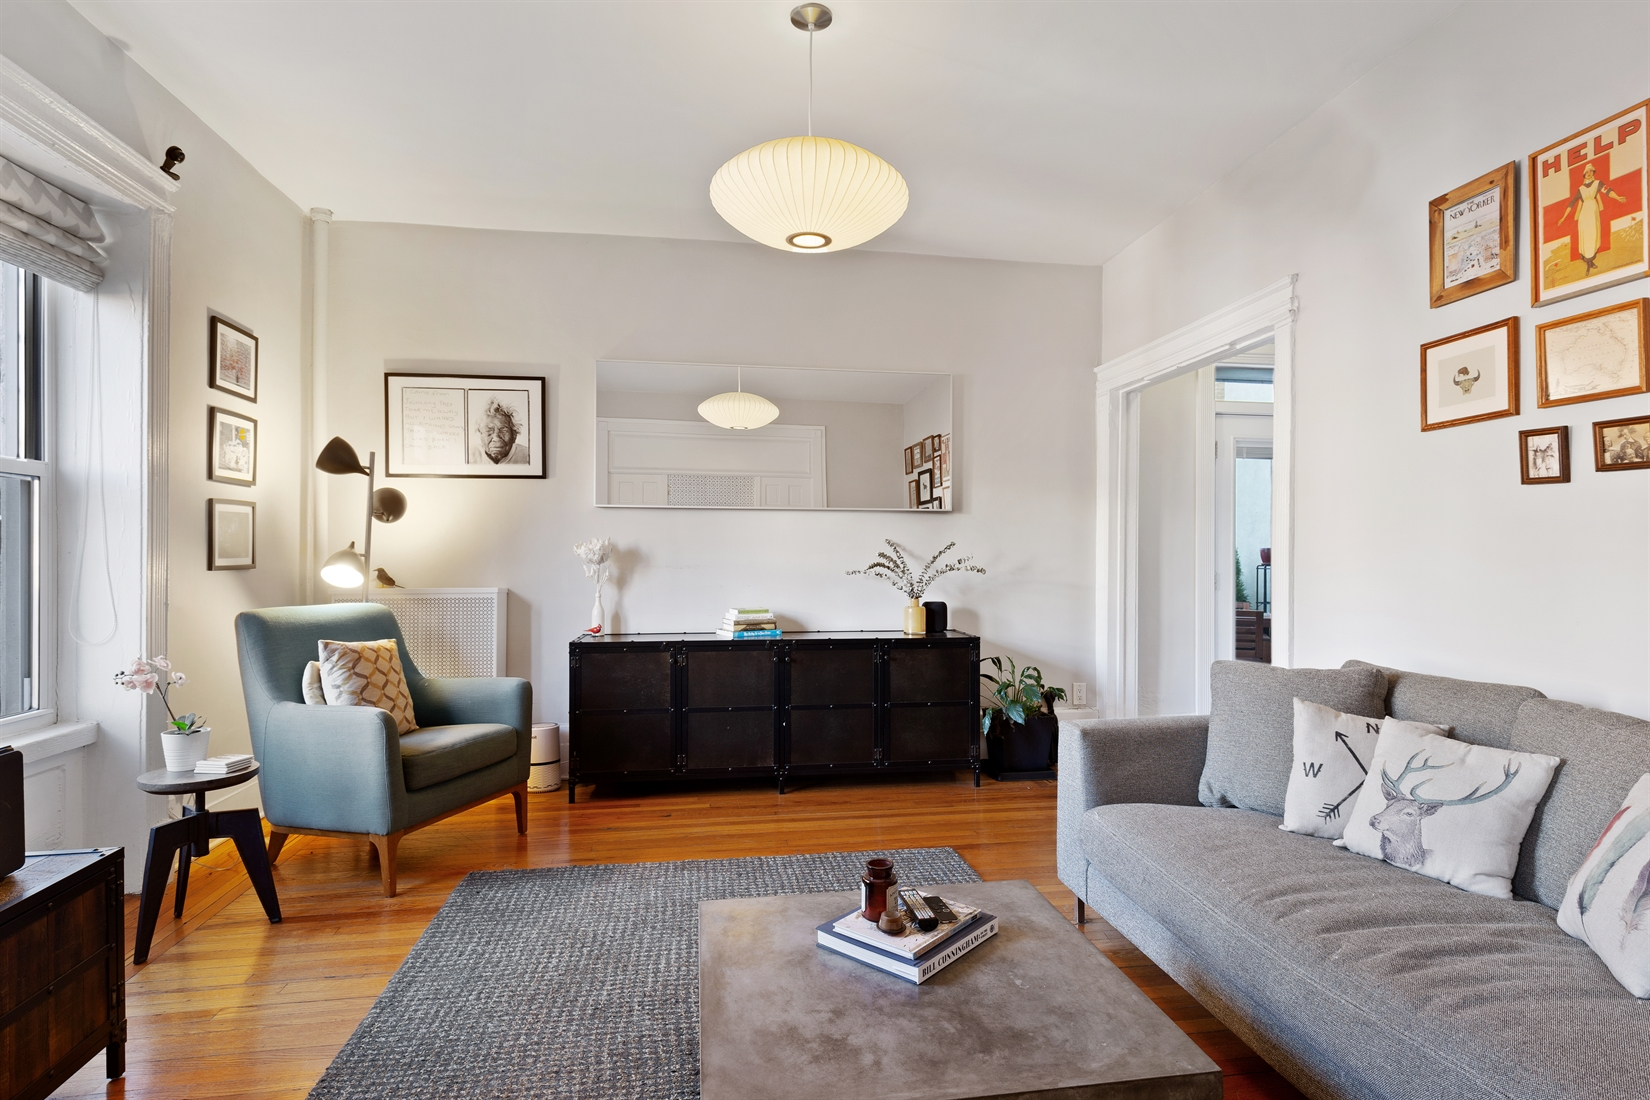 Apartment for sale at 469 Eastern Parkway, Apt B